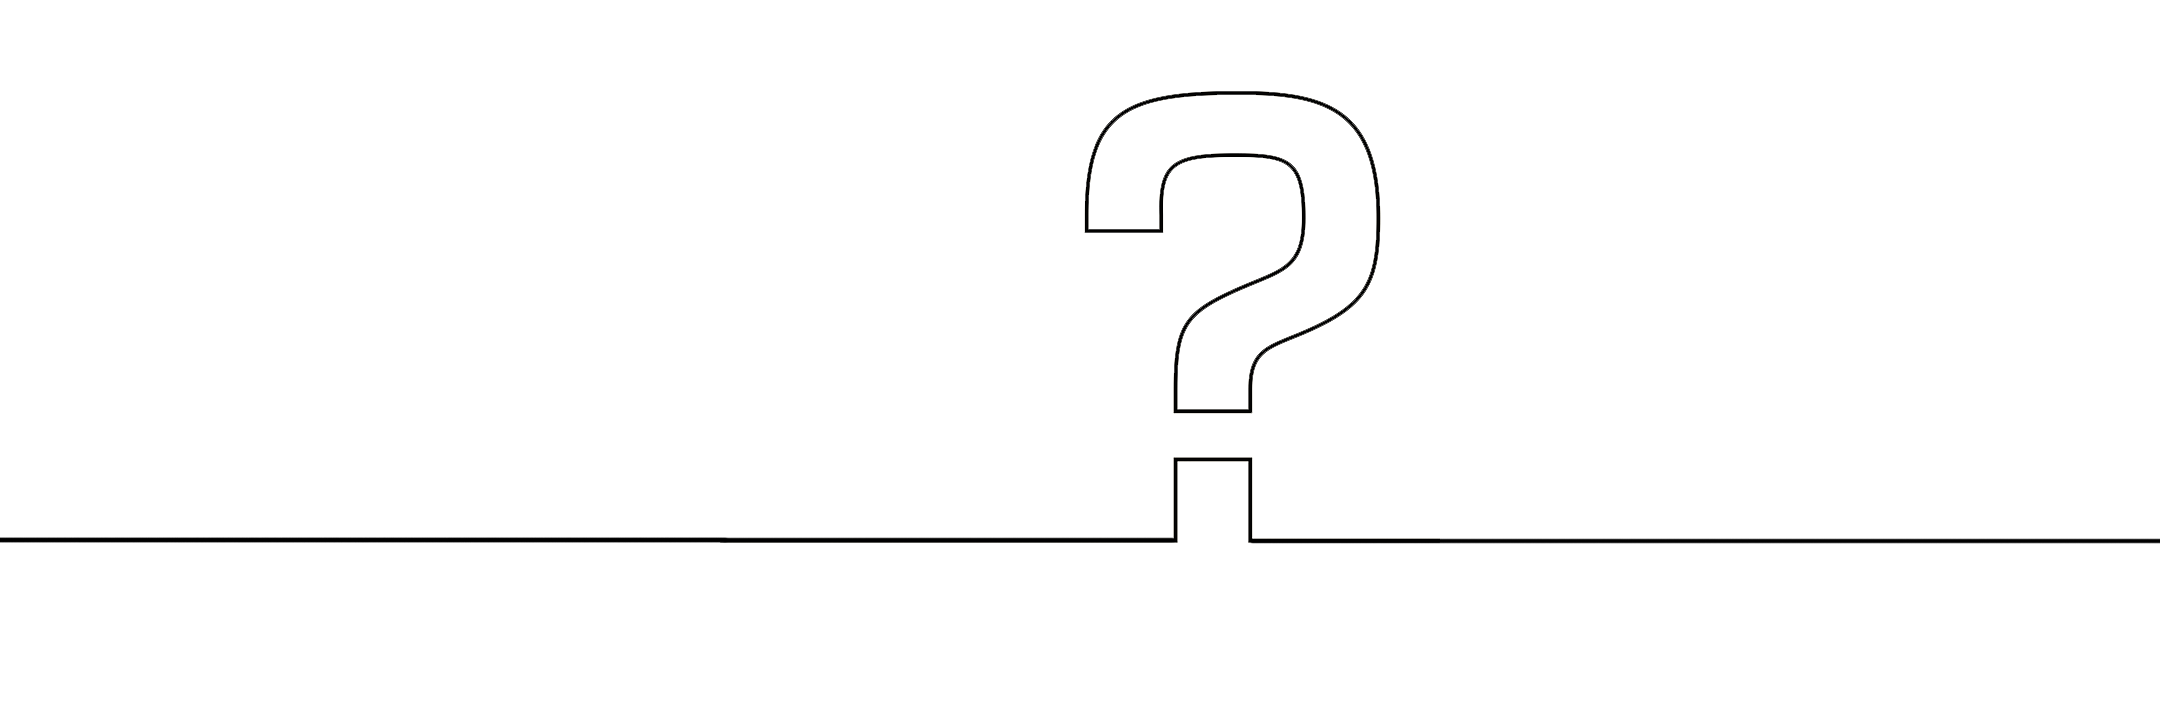 question-1332062_960_720.png